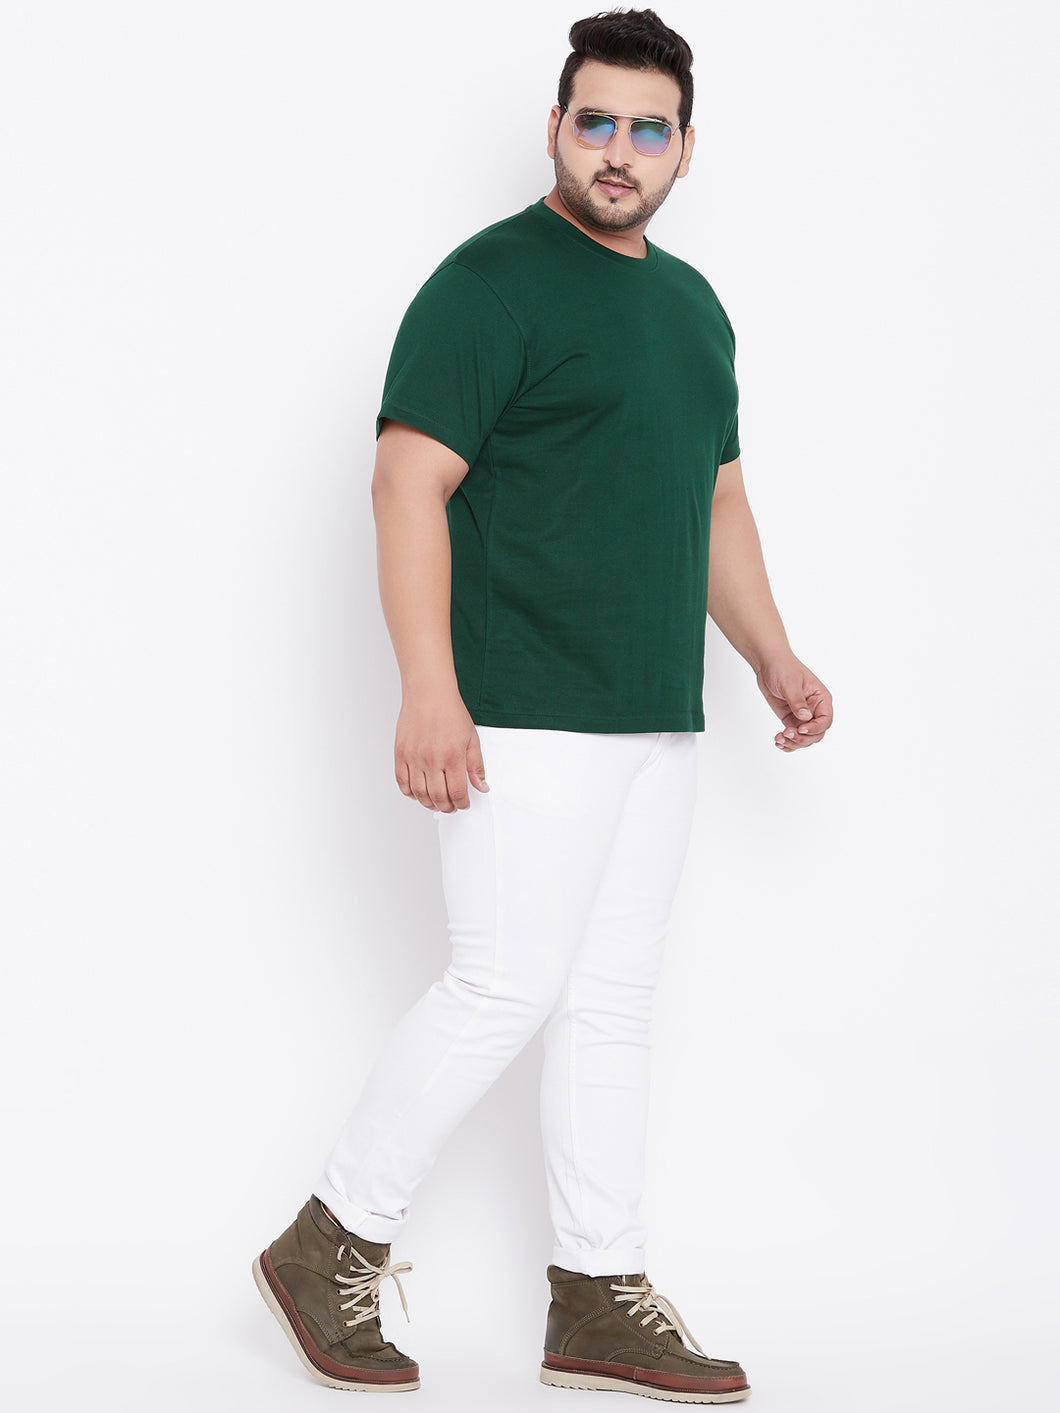 bigbanana Tony Dark Green Round Neck T-Shirt - Bigbanana